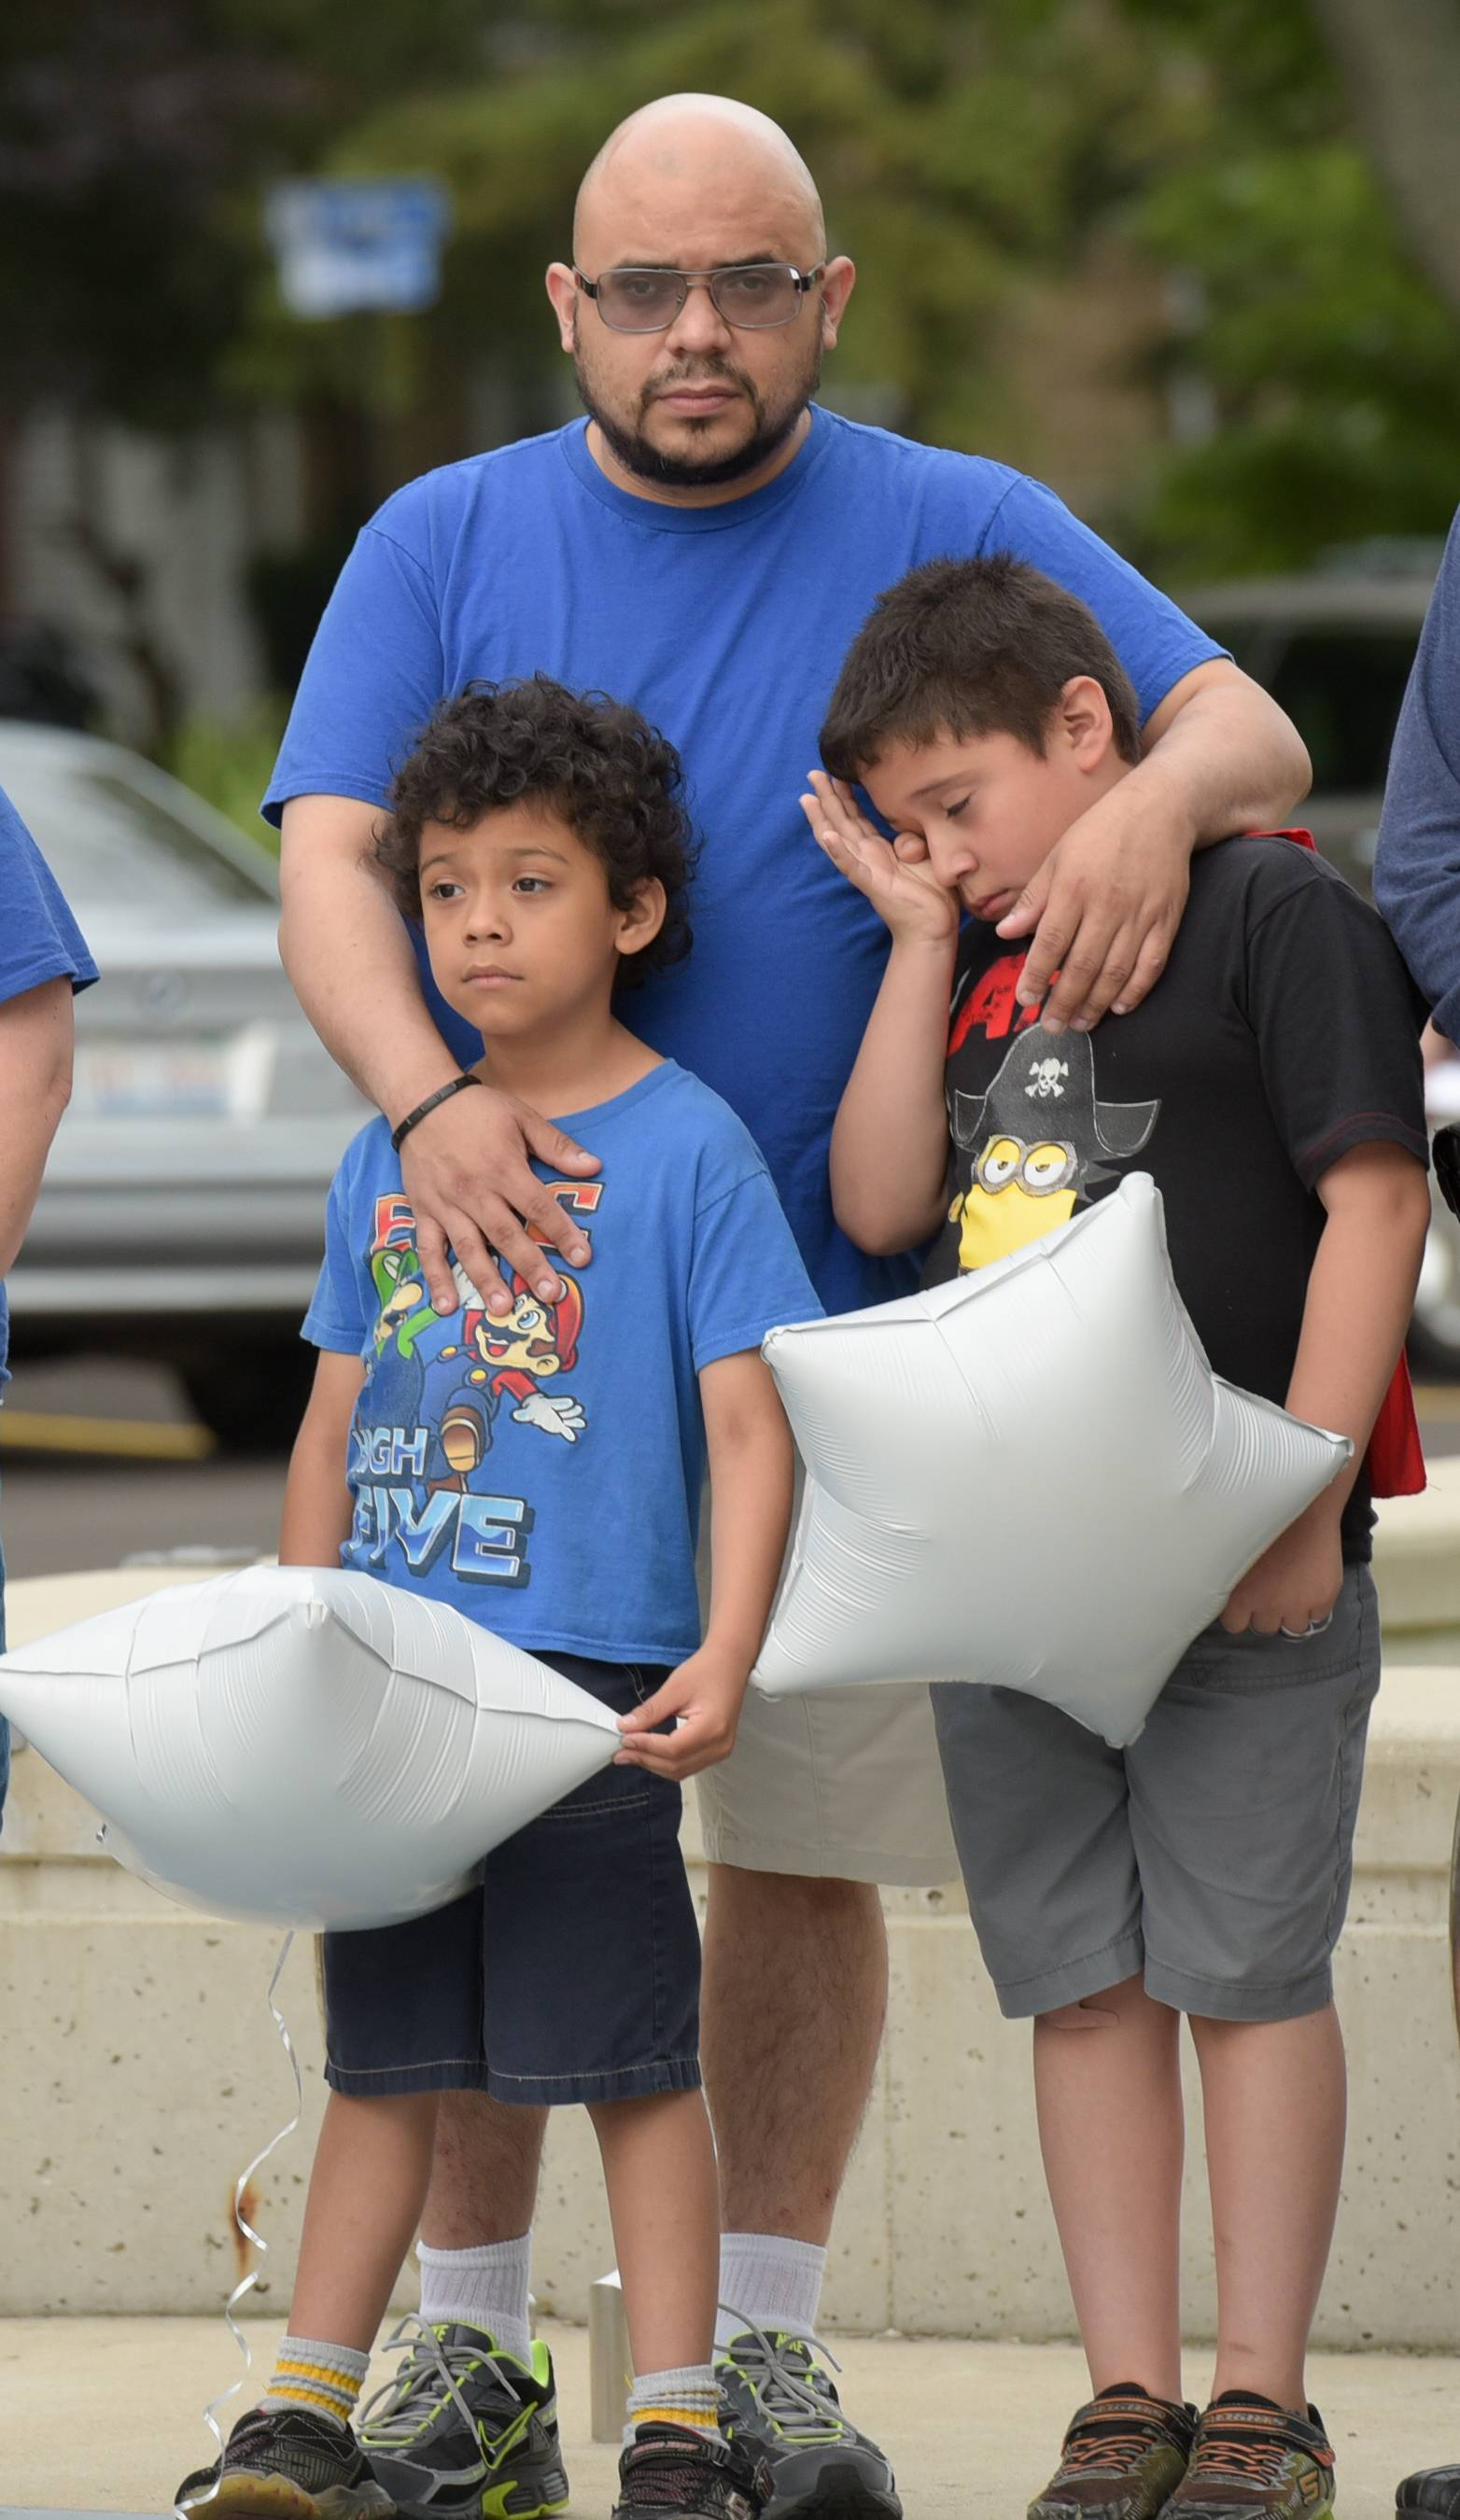 Armando Gomez and his sons, Adrian, 7, and Josue, 9, pay their respects for Thomas DeMauro at Tioga Elementary School in Bensenville on Monday.